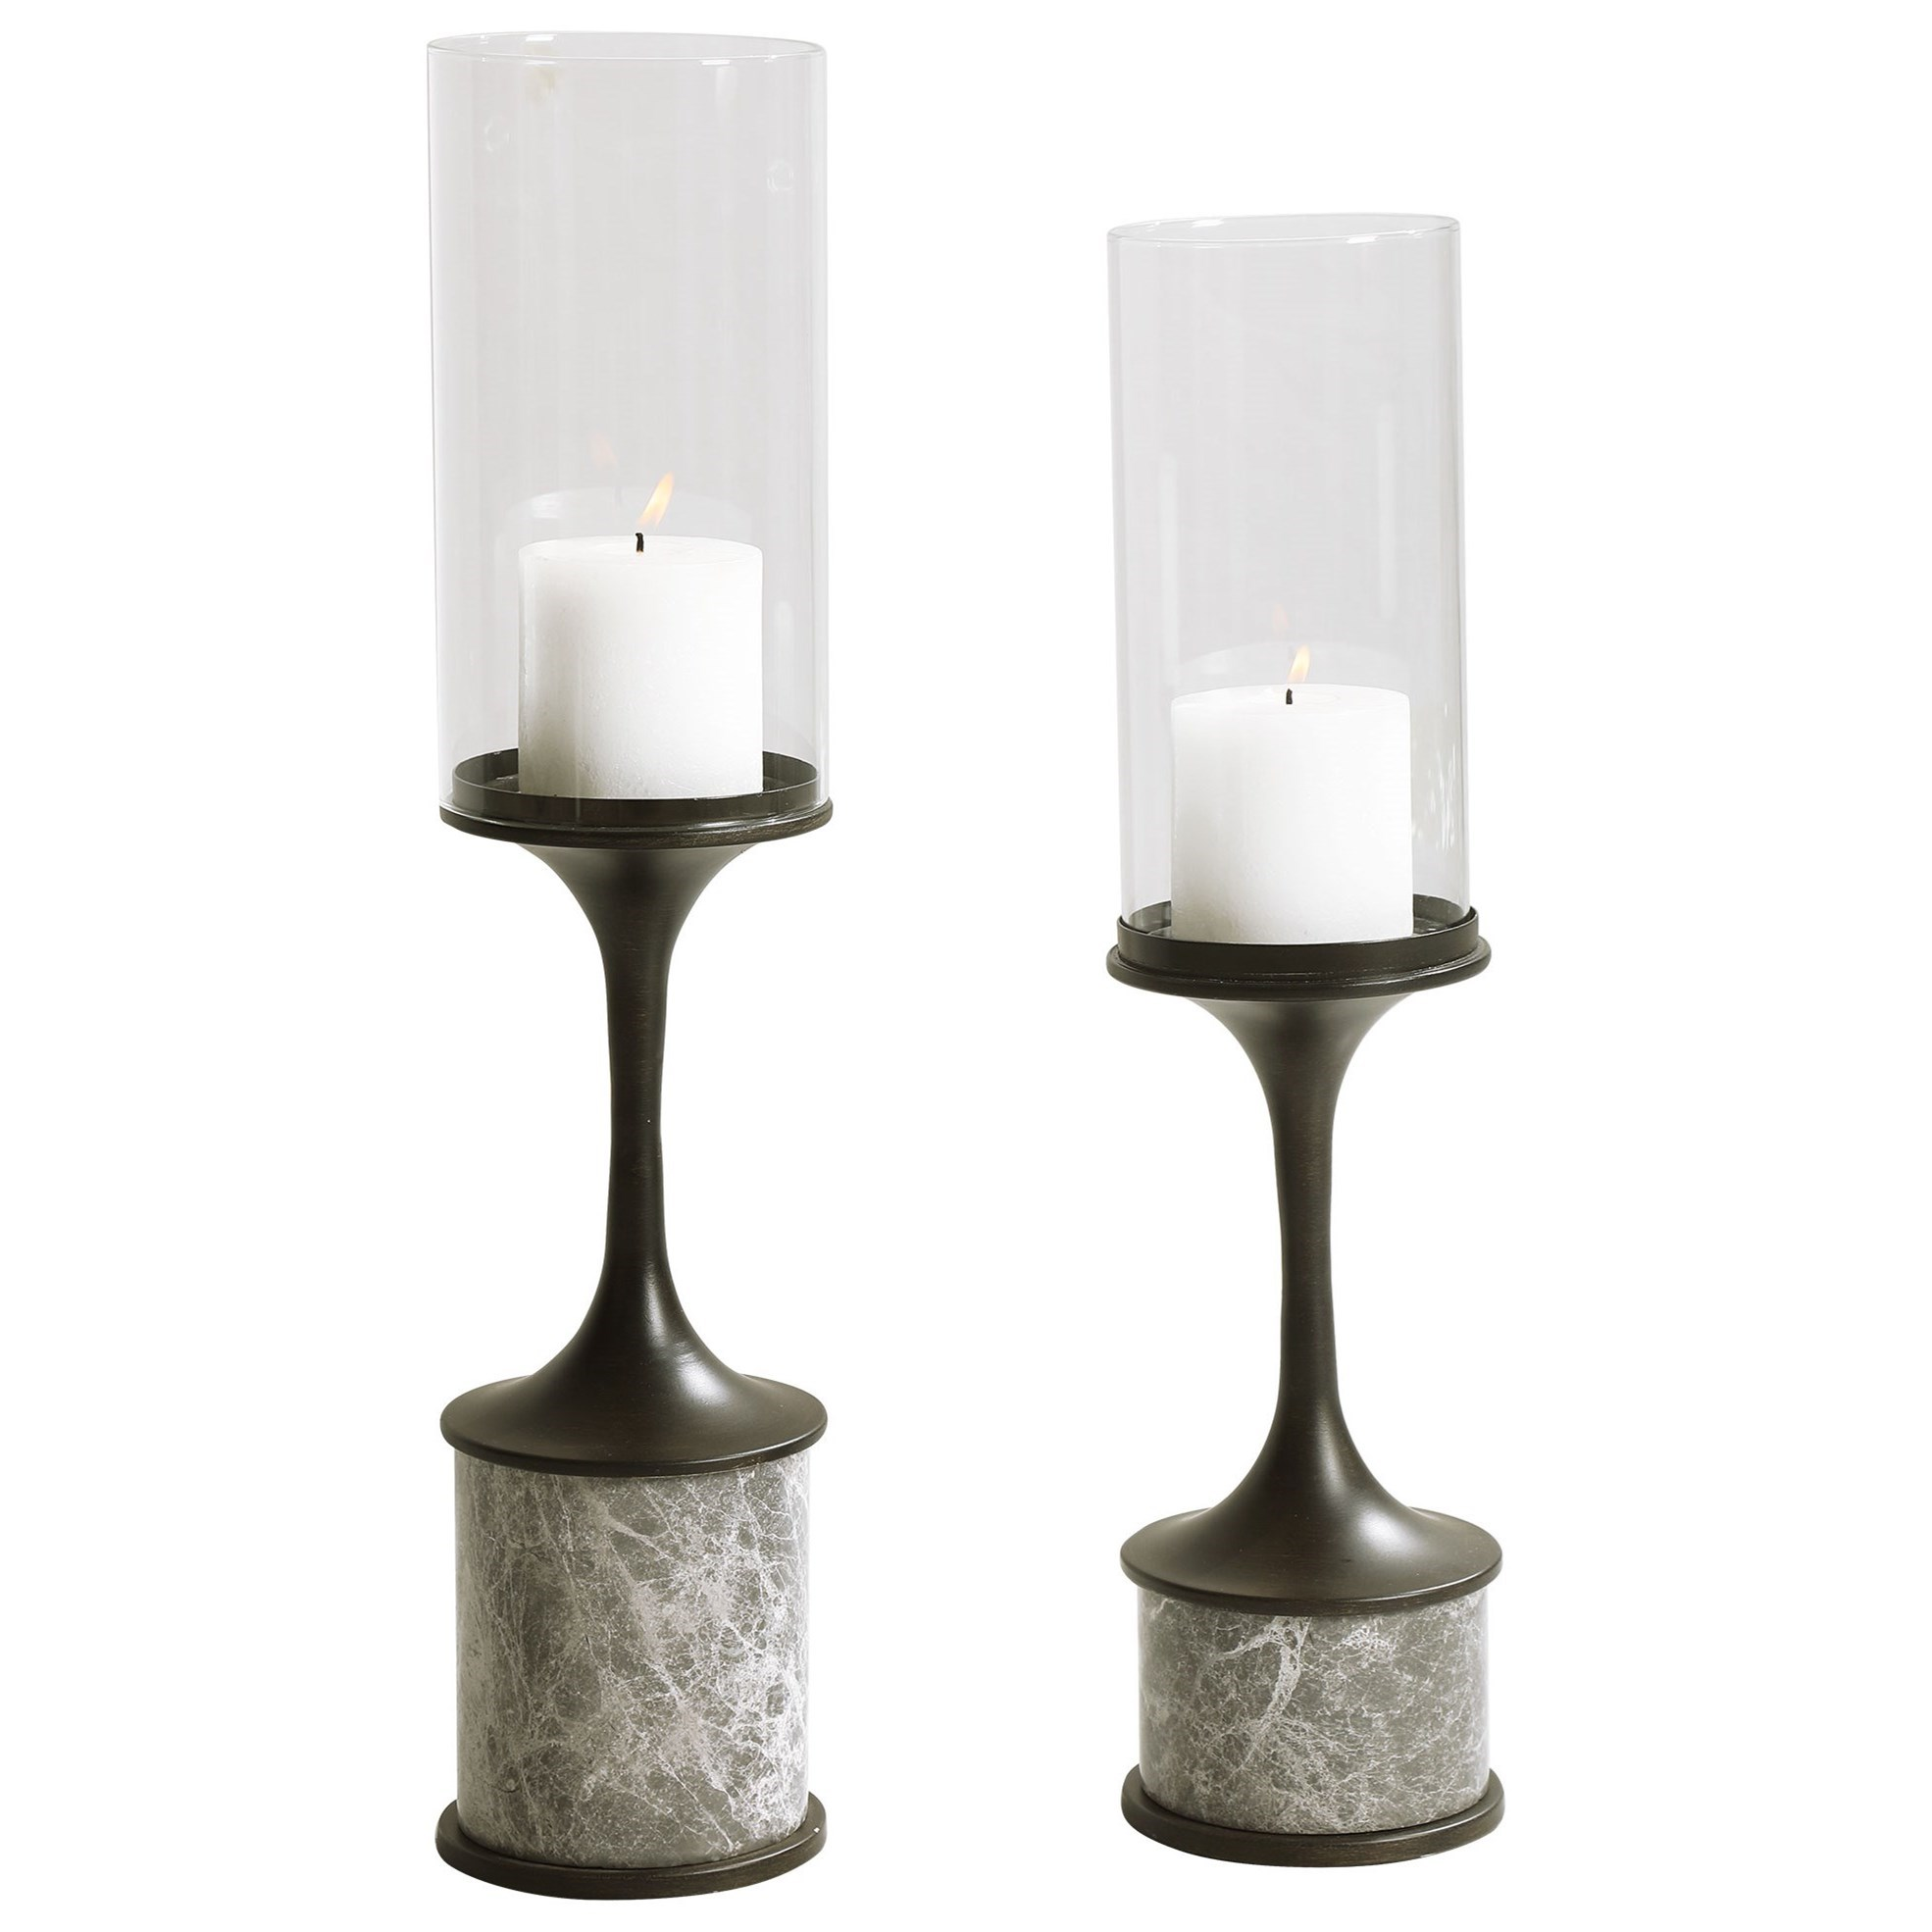 Accessories - Candle Holders Deane Marble Candleholders, S/2 by Uttermost at Furniture and ApplianceMart